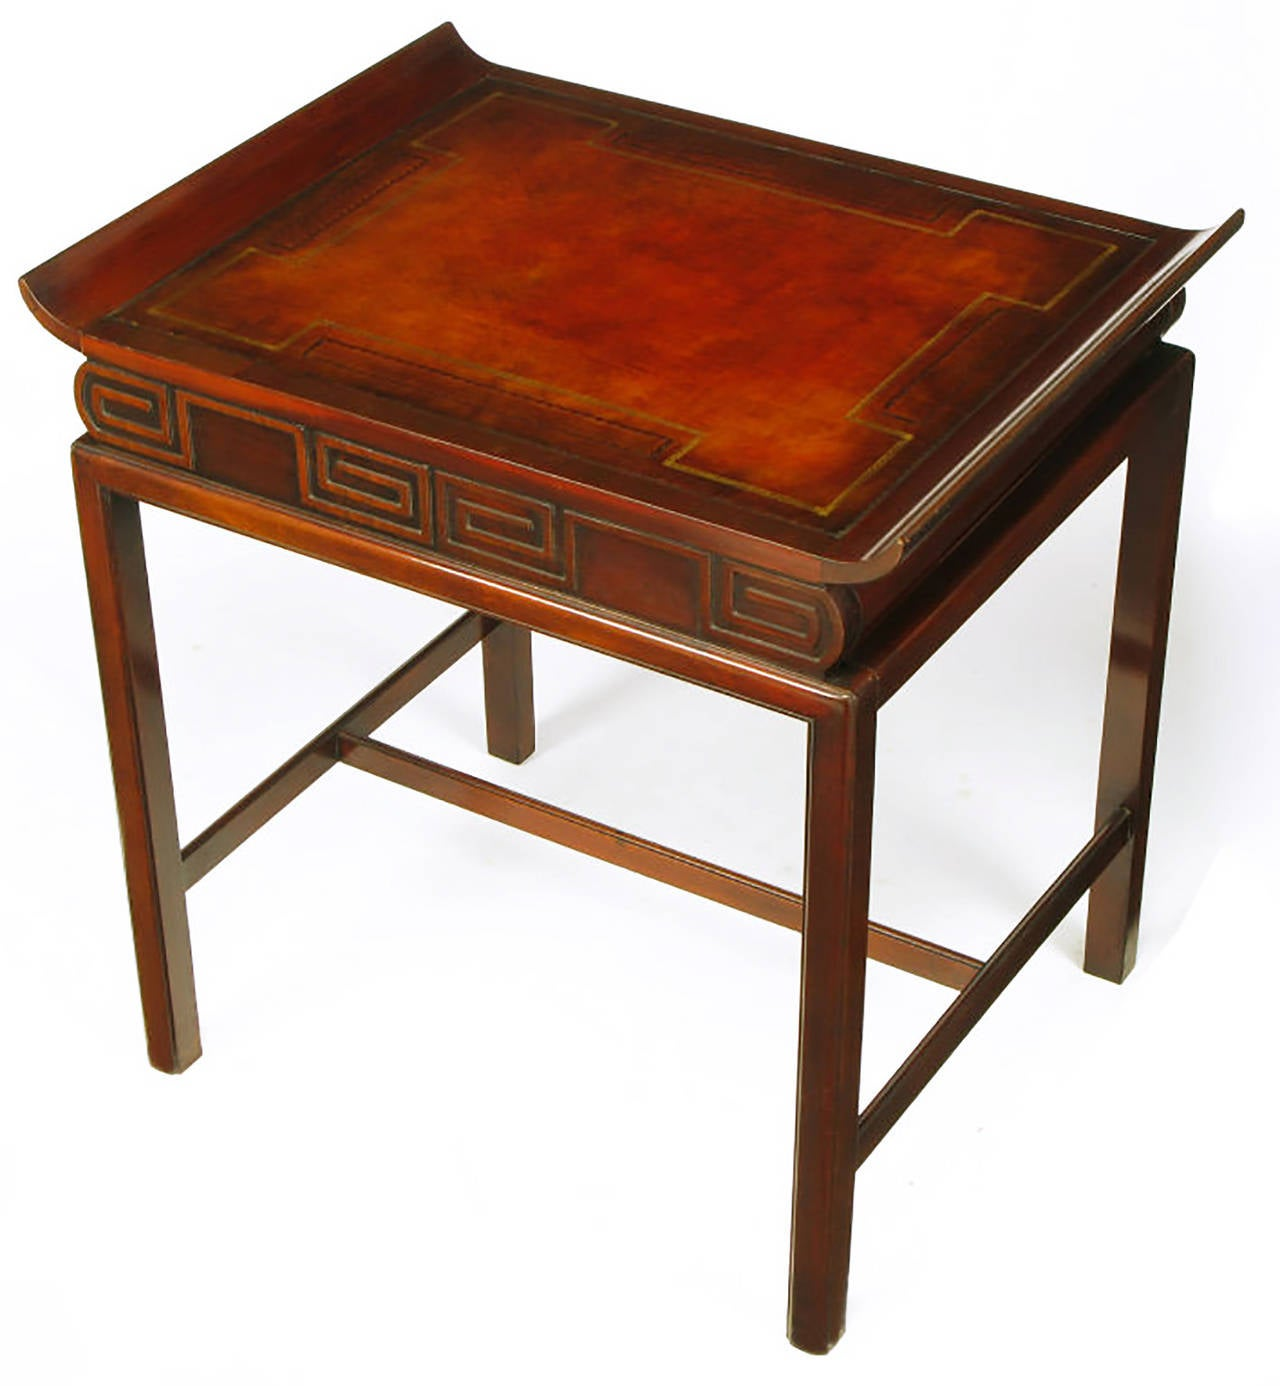 Pair of Curved Mahogany and Leather Top End Tables with Greek Key Reliefs 5